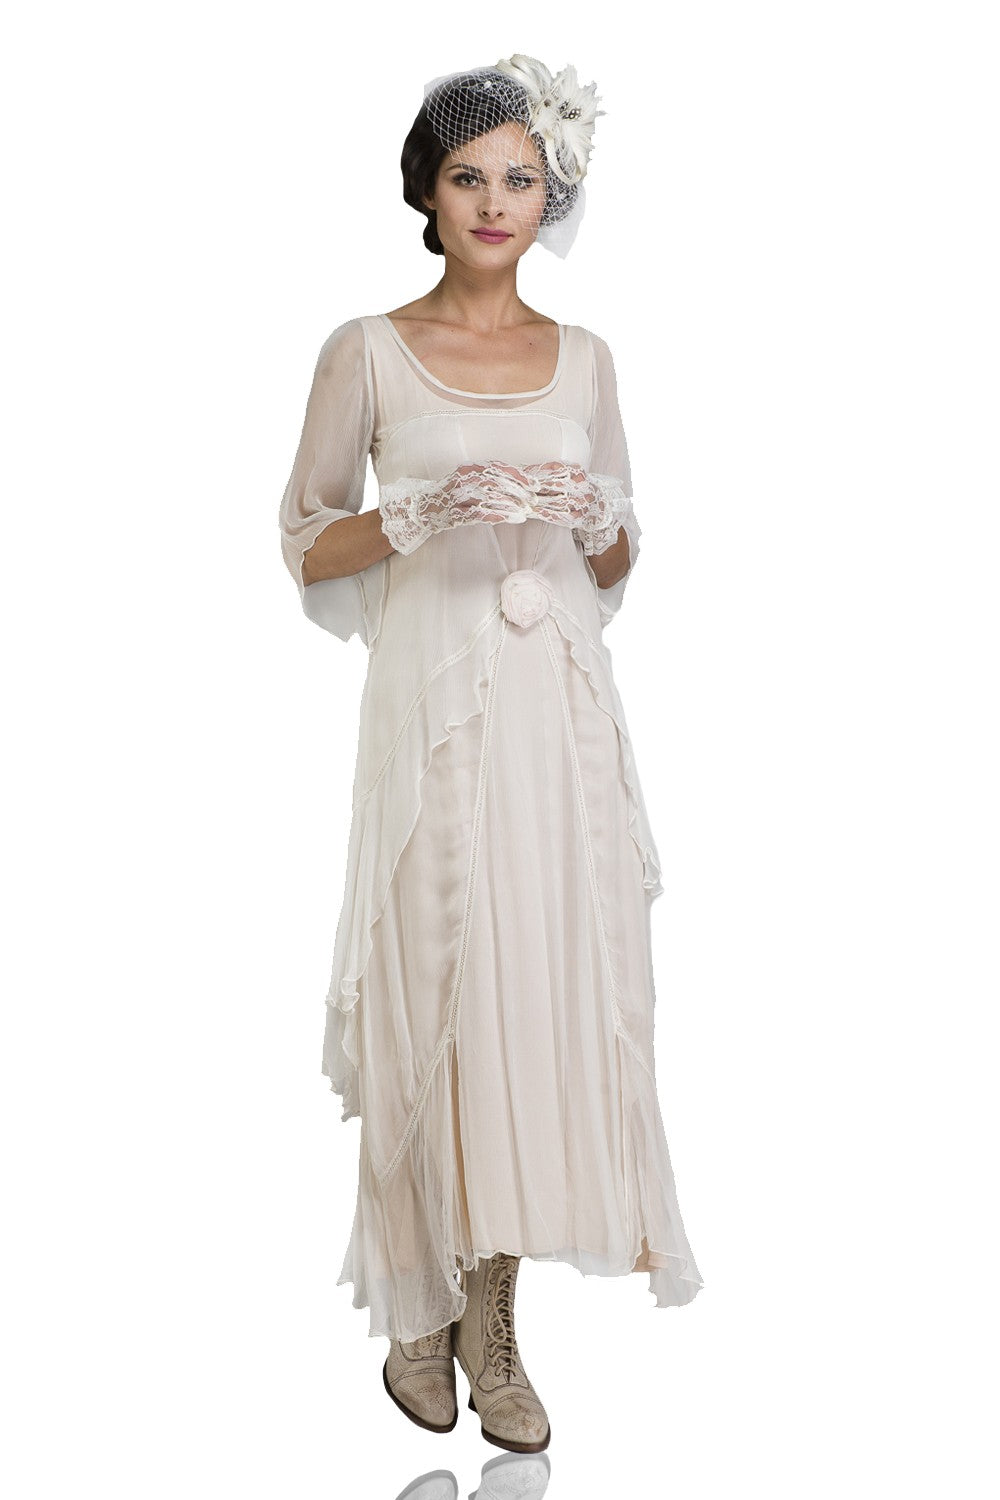 1920s Wedding Dresses- Art Deco Wedding Dress, Gatsby Wedding Dress Great Gatsby Party Dress in Ivory by Nataya $228.00 AT vintagedancer.com